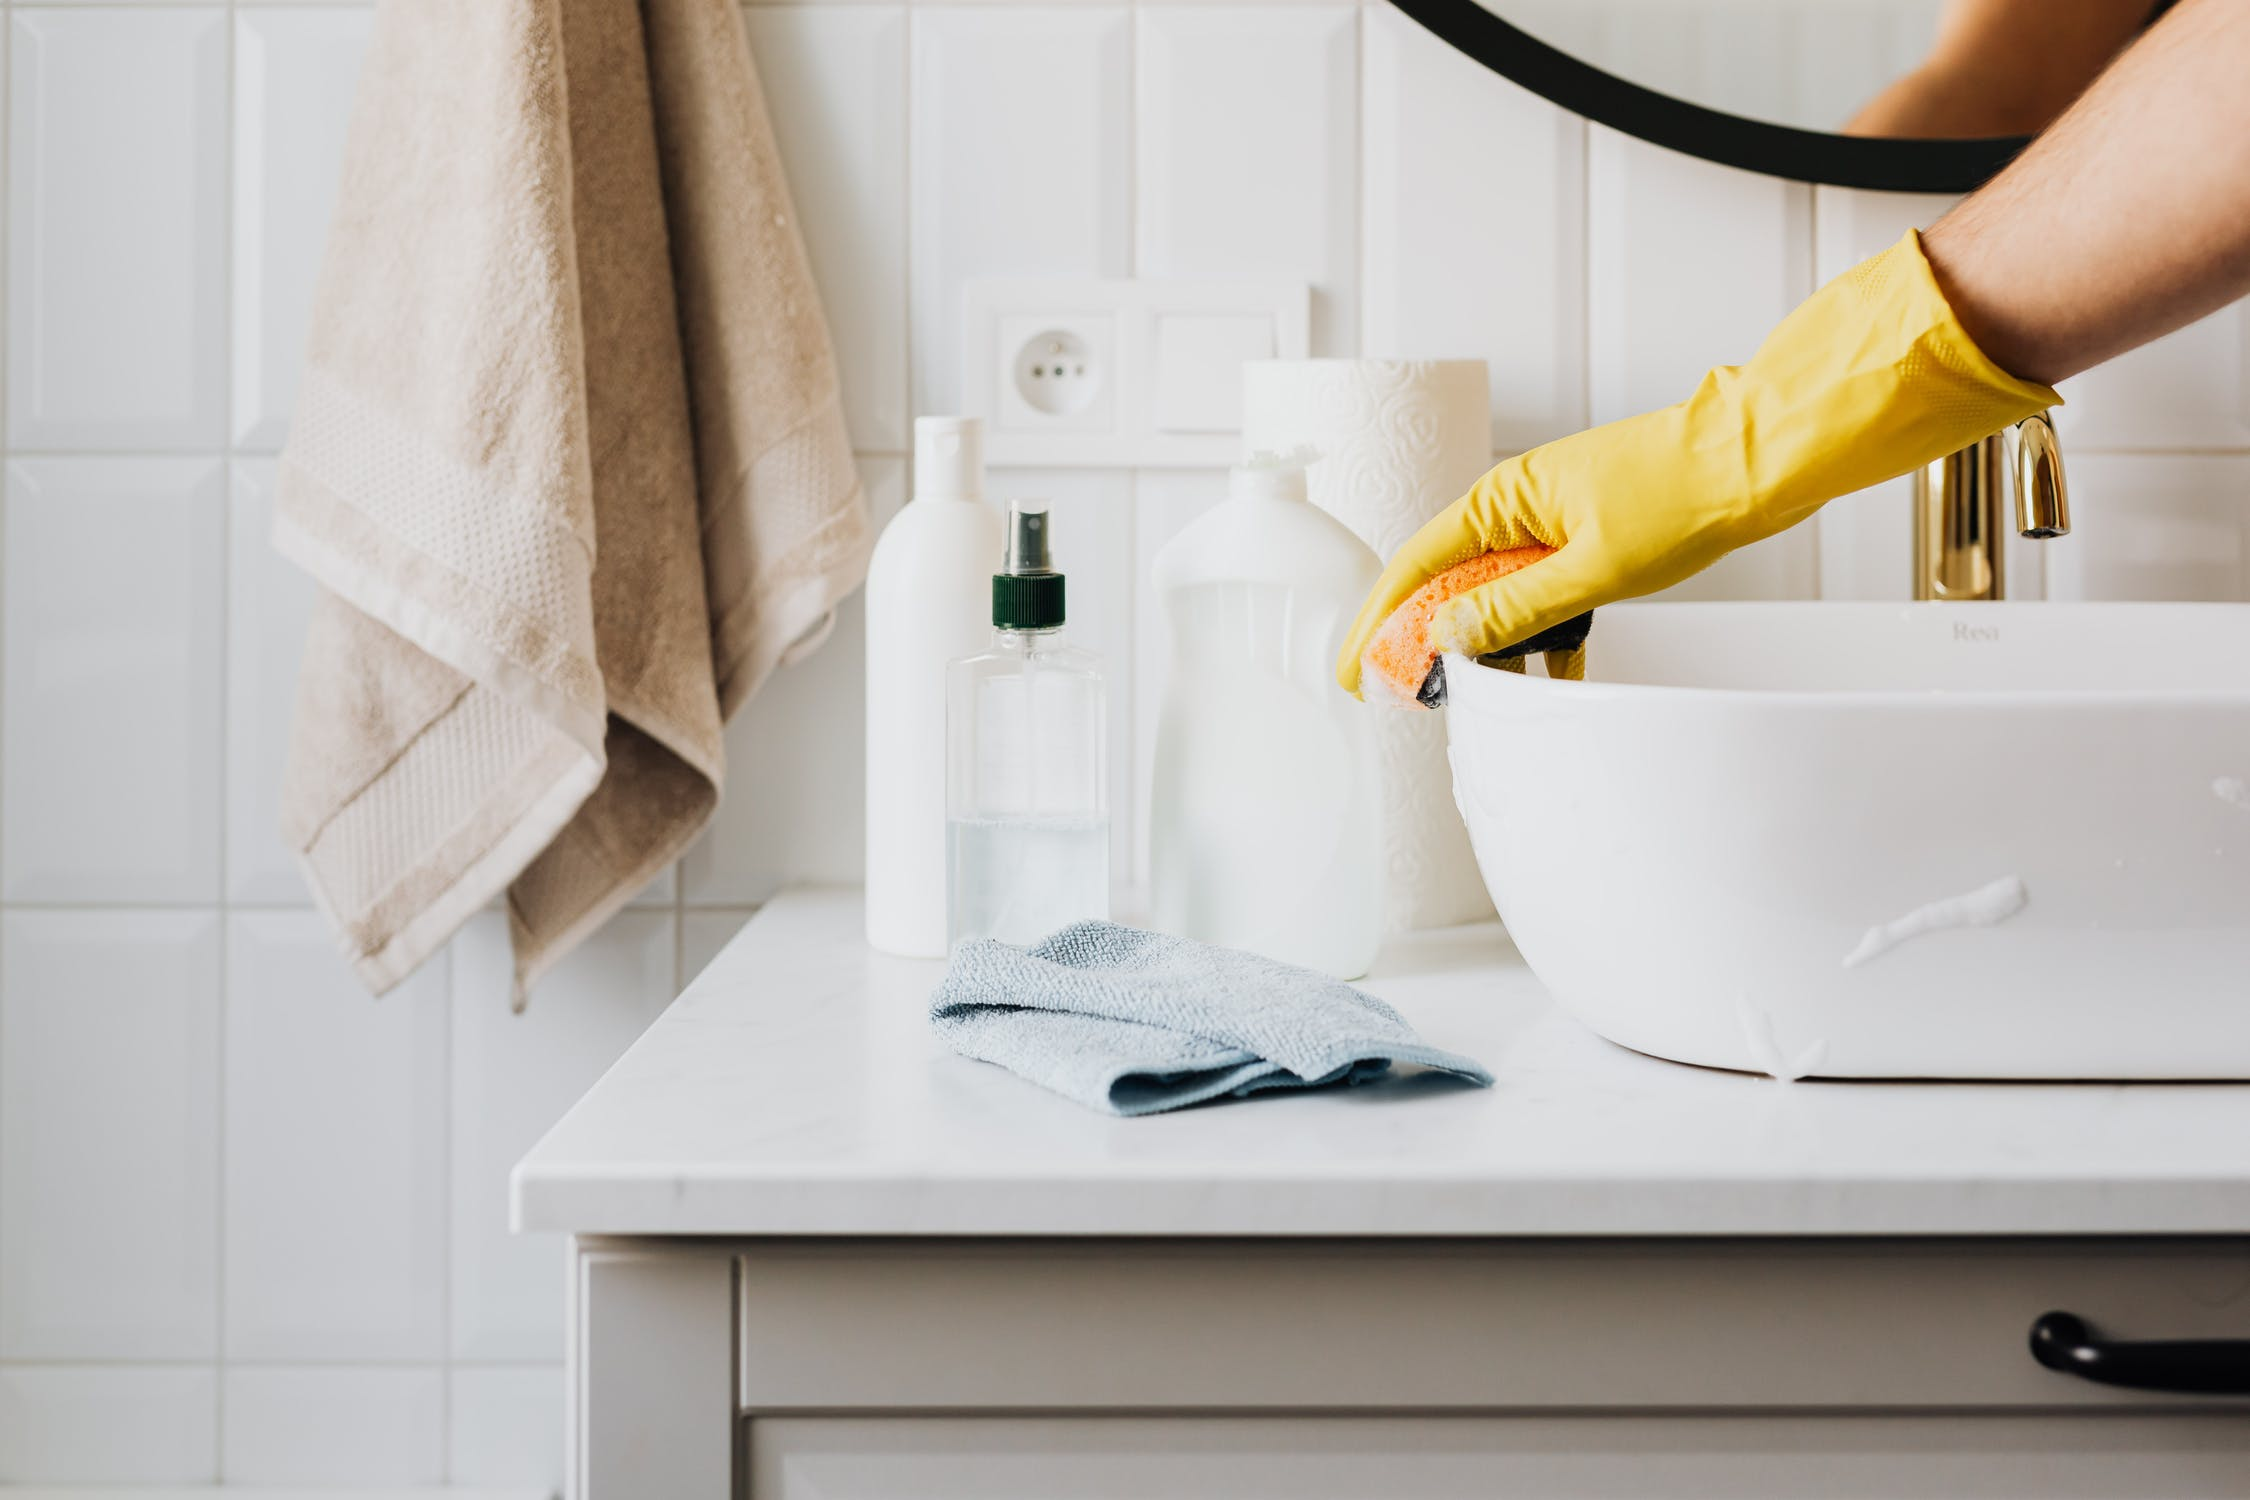 Top 10 Easy Cleaning Hacks by Cleanhome Sussex